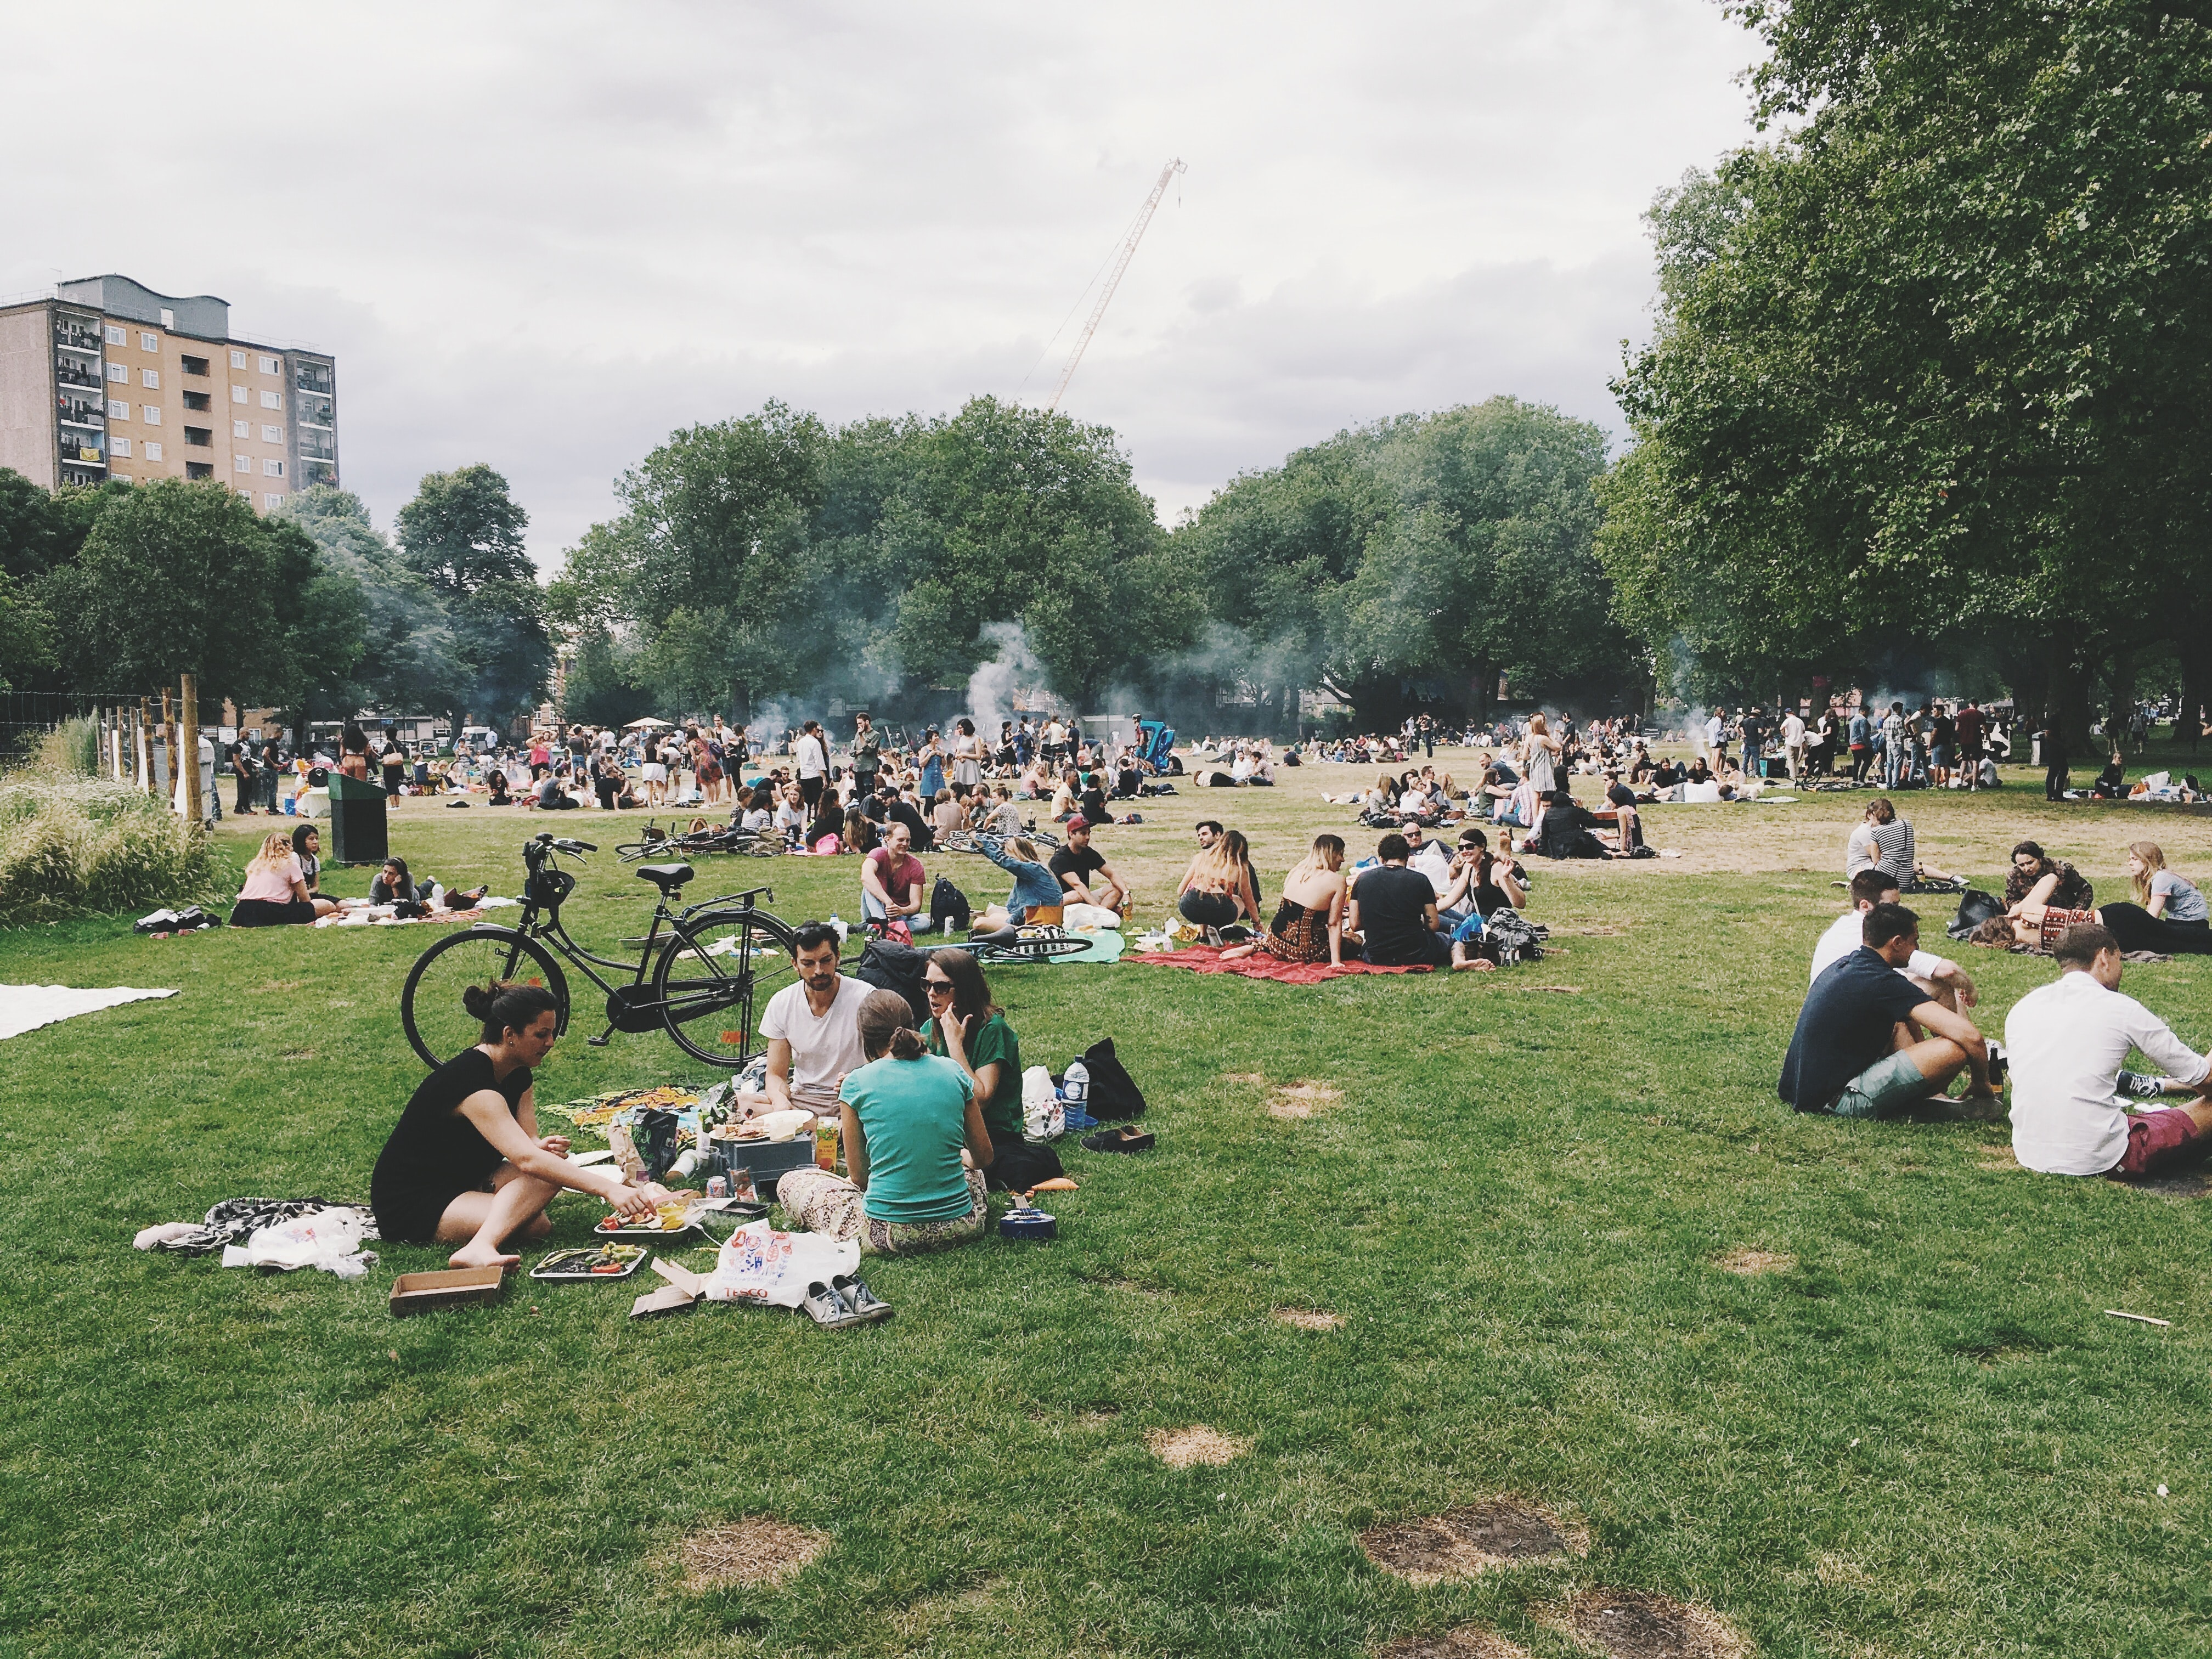 Diverse crowd of people sit and picnic in an urban park